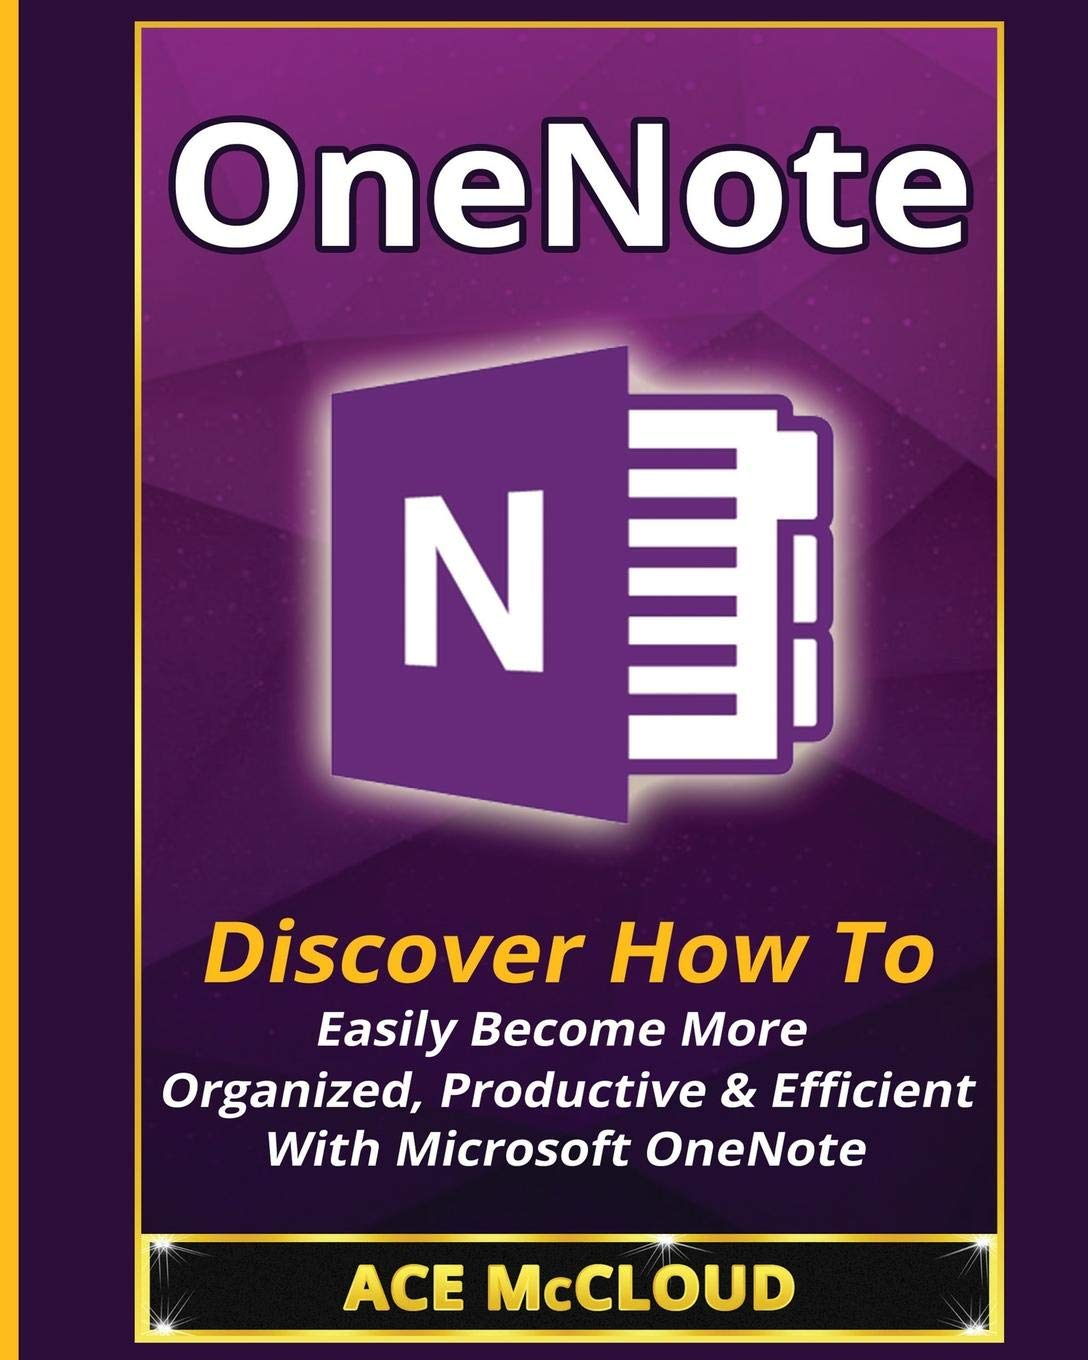 OneNote: Discover How To Easily Become More Organized